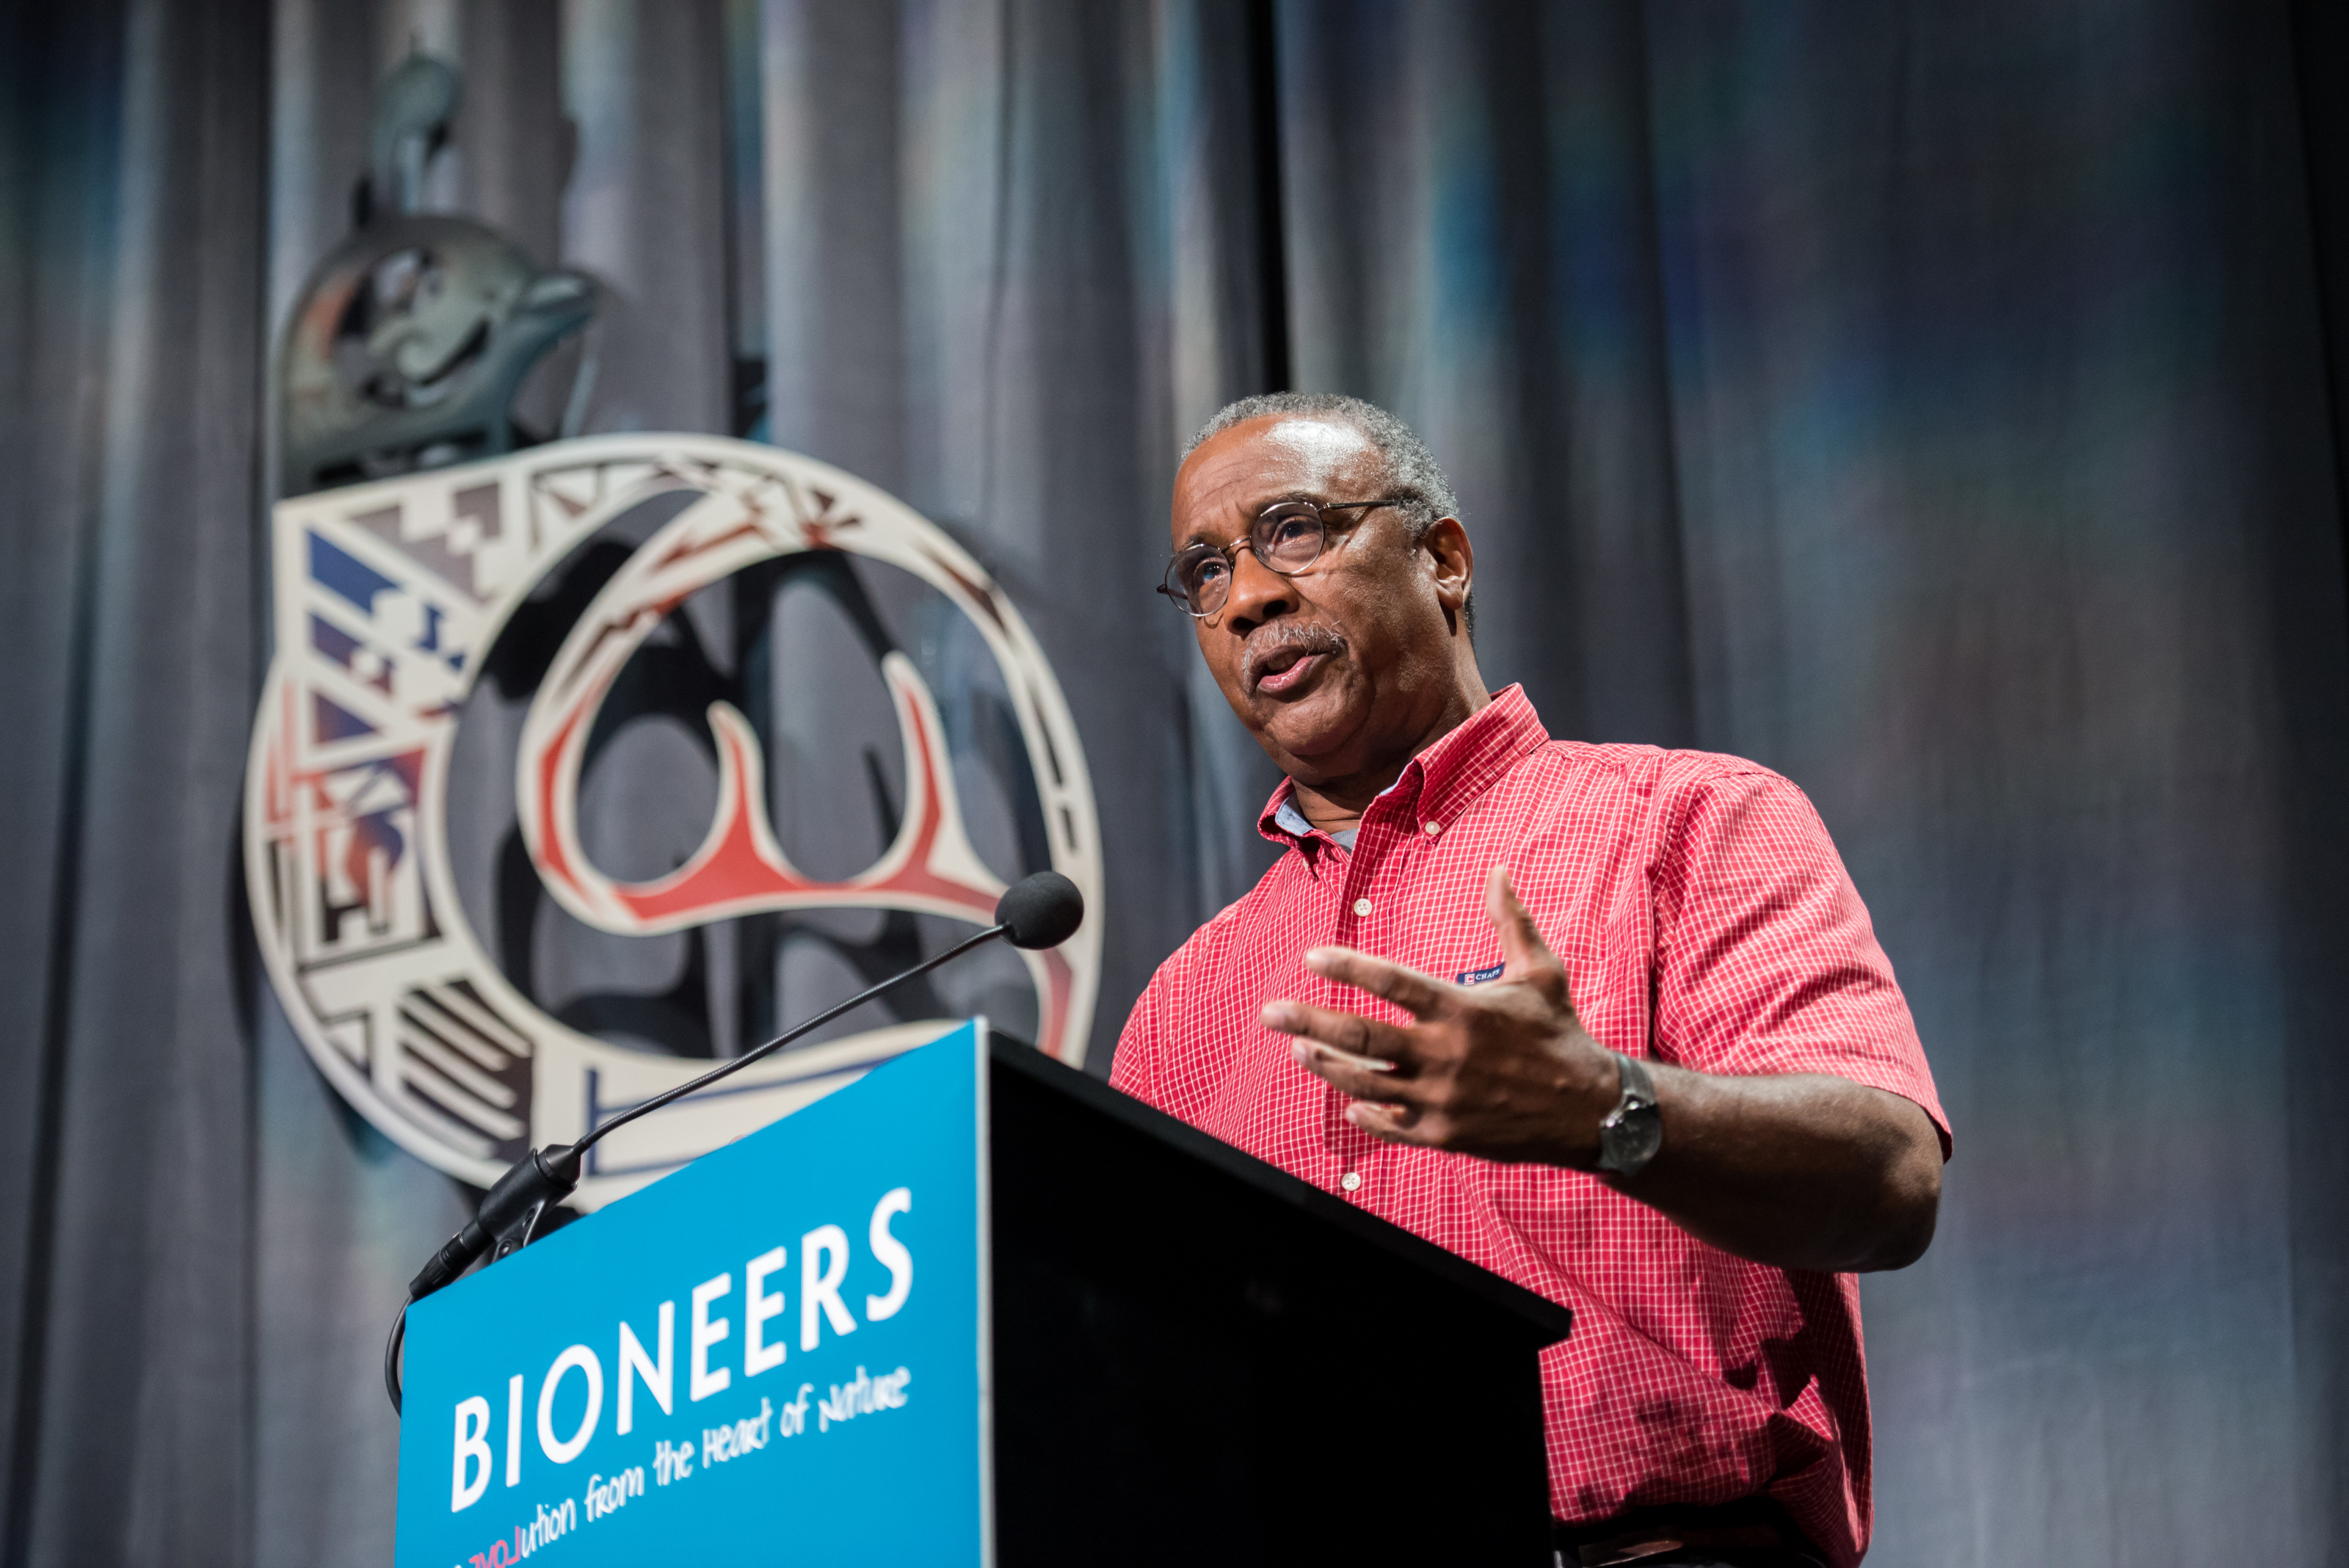 Biomimicry Enthusiast Greg Watson speaking at the 2015 Bioneers Conference